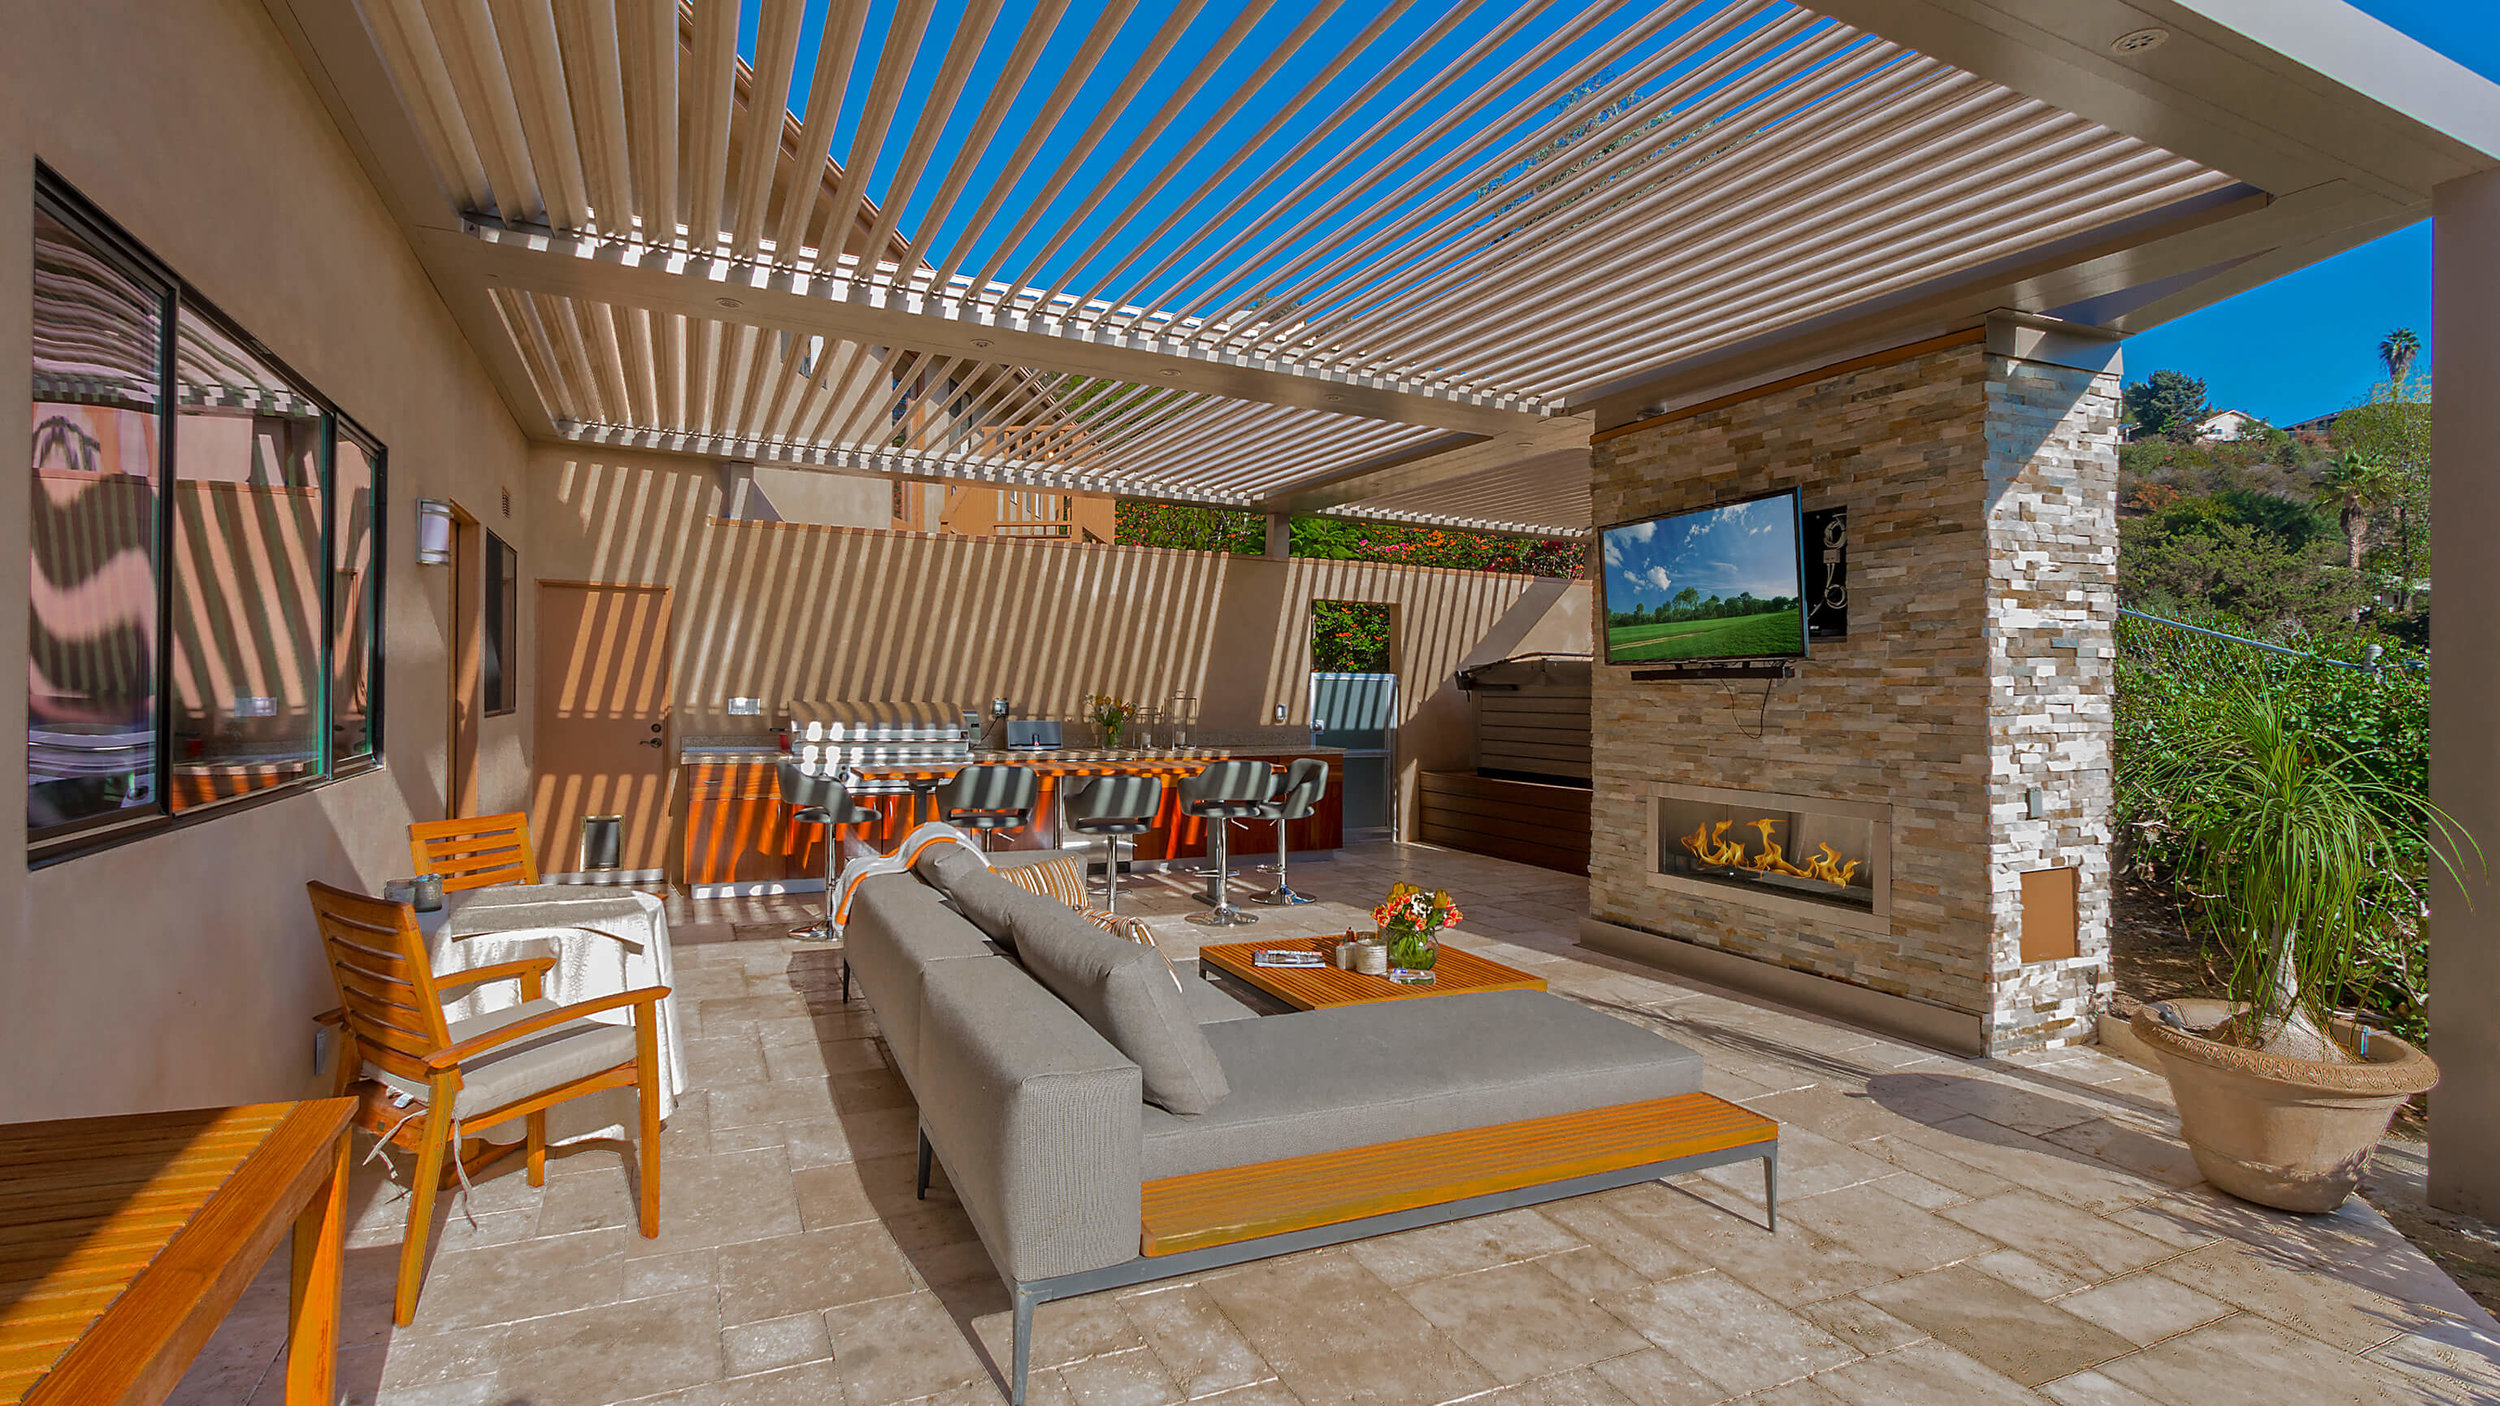 Garden Living - Pergolas, Cabanas, Shade Structures, Outdoor Kitchen 2.jpg